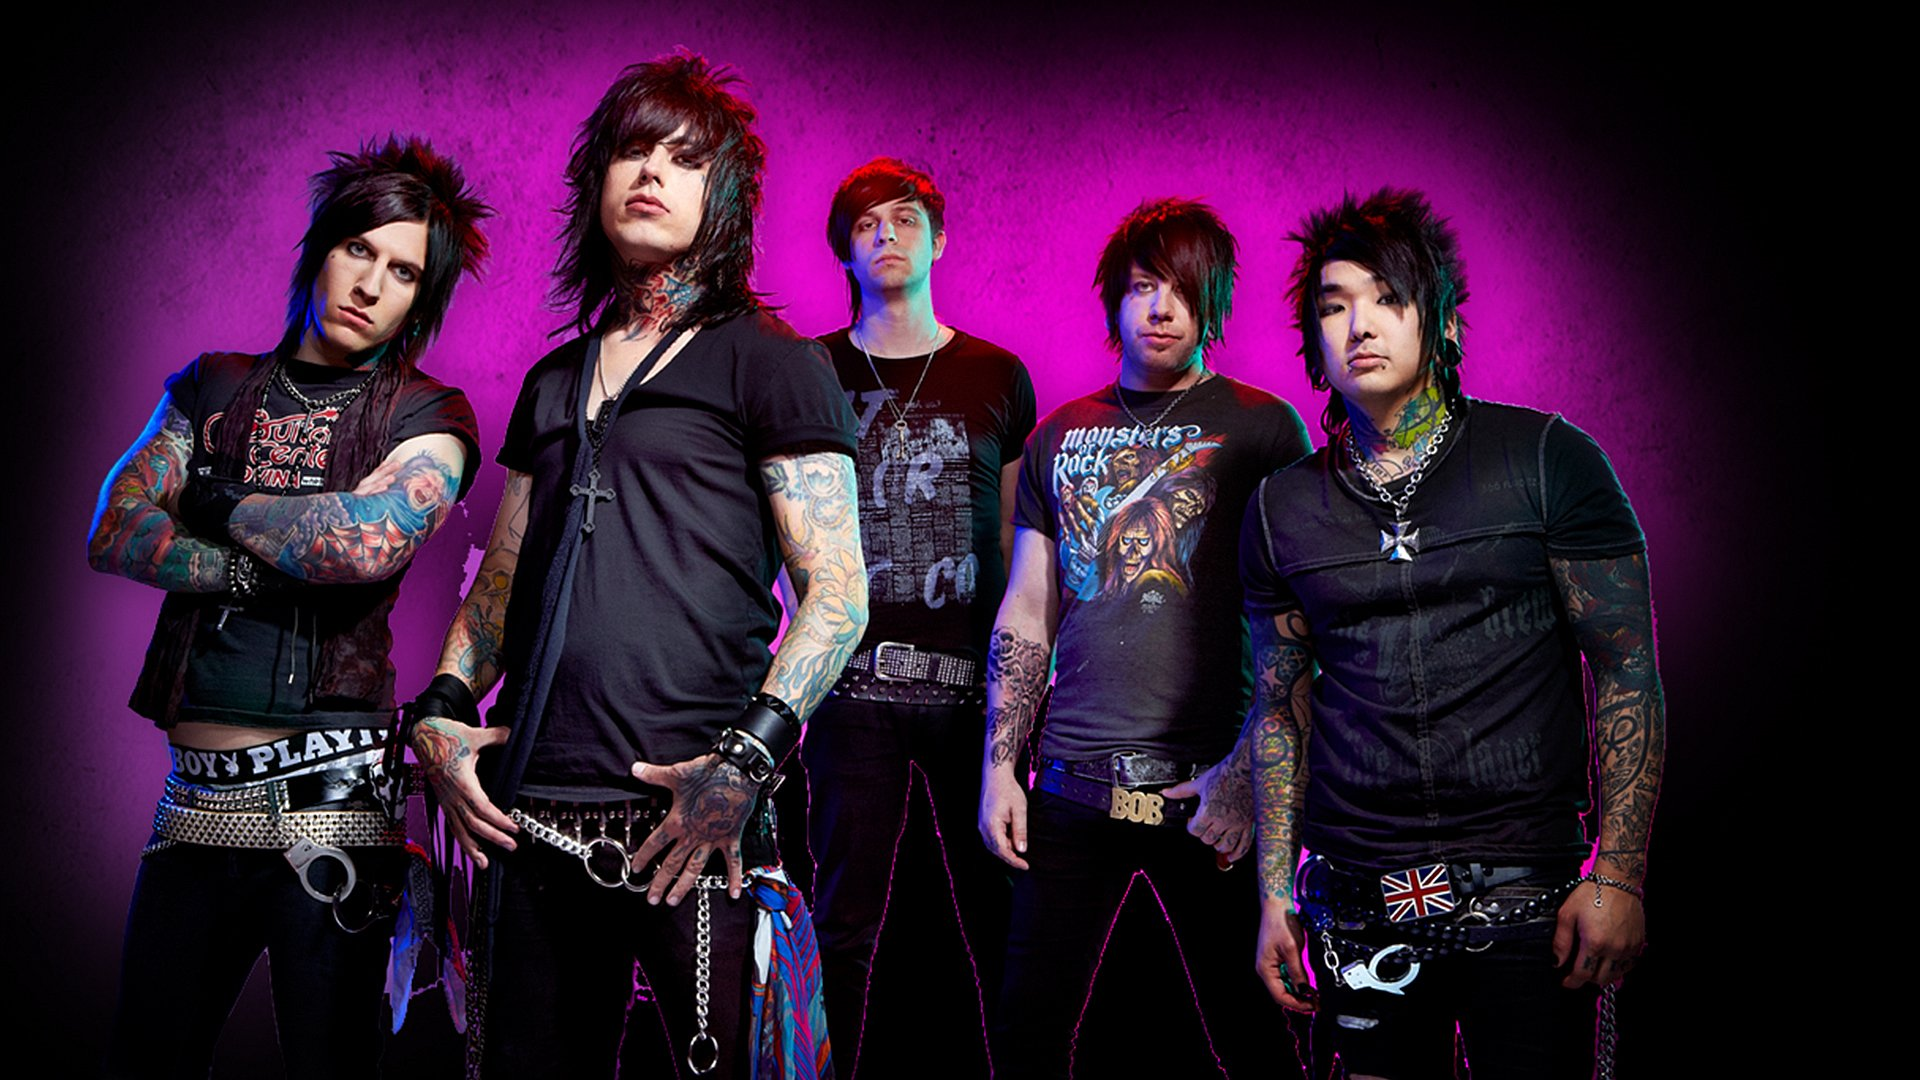 Falling In Reverse Wallpaper Iphone Falling In Reverse Full Hd Wallpaper And Background